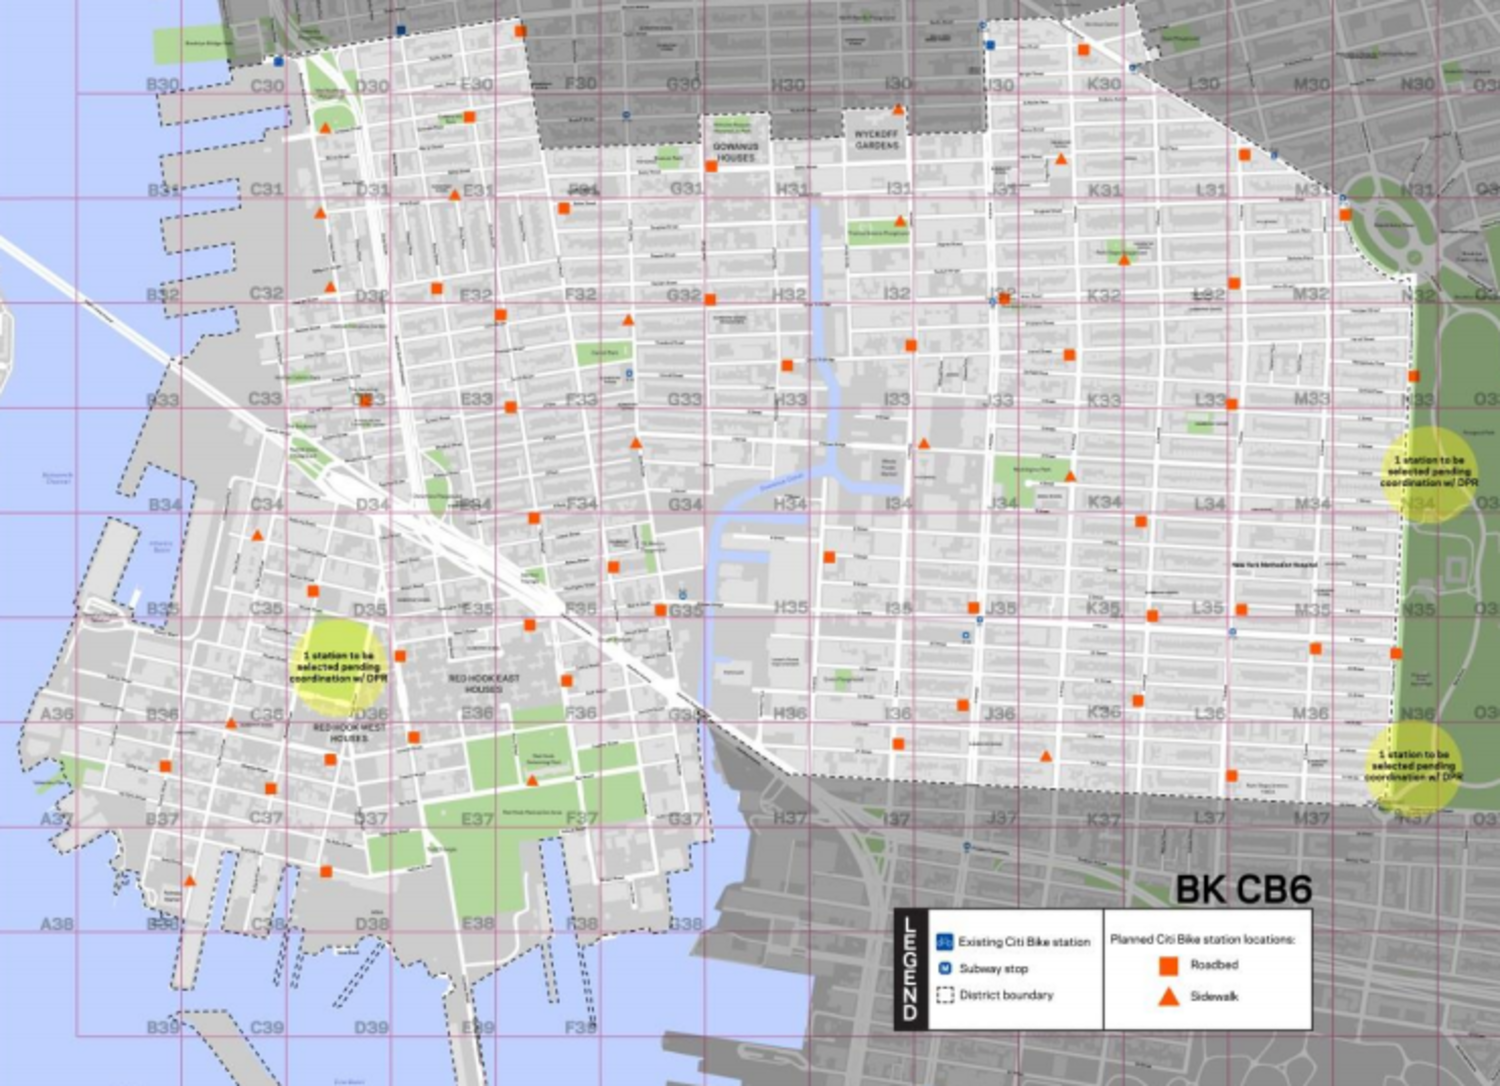 There will be more bike-share stations in Brooklyn Community Board 6 than this map indicates.